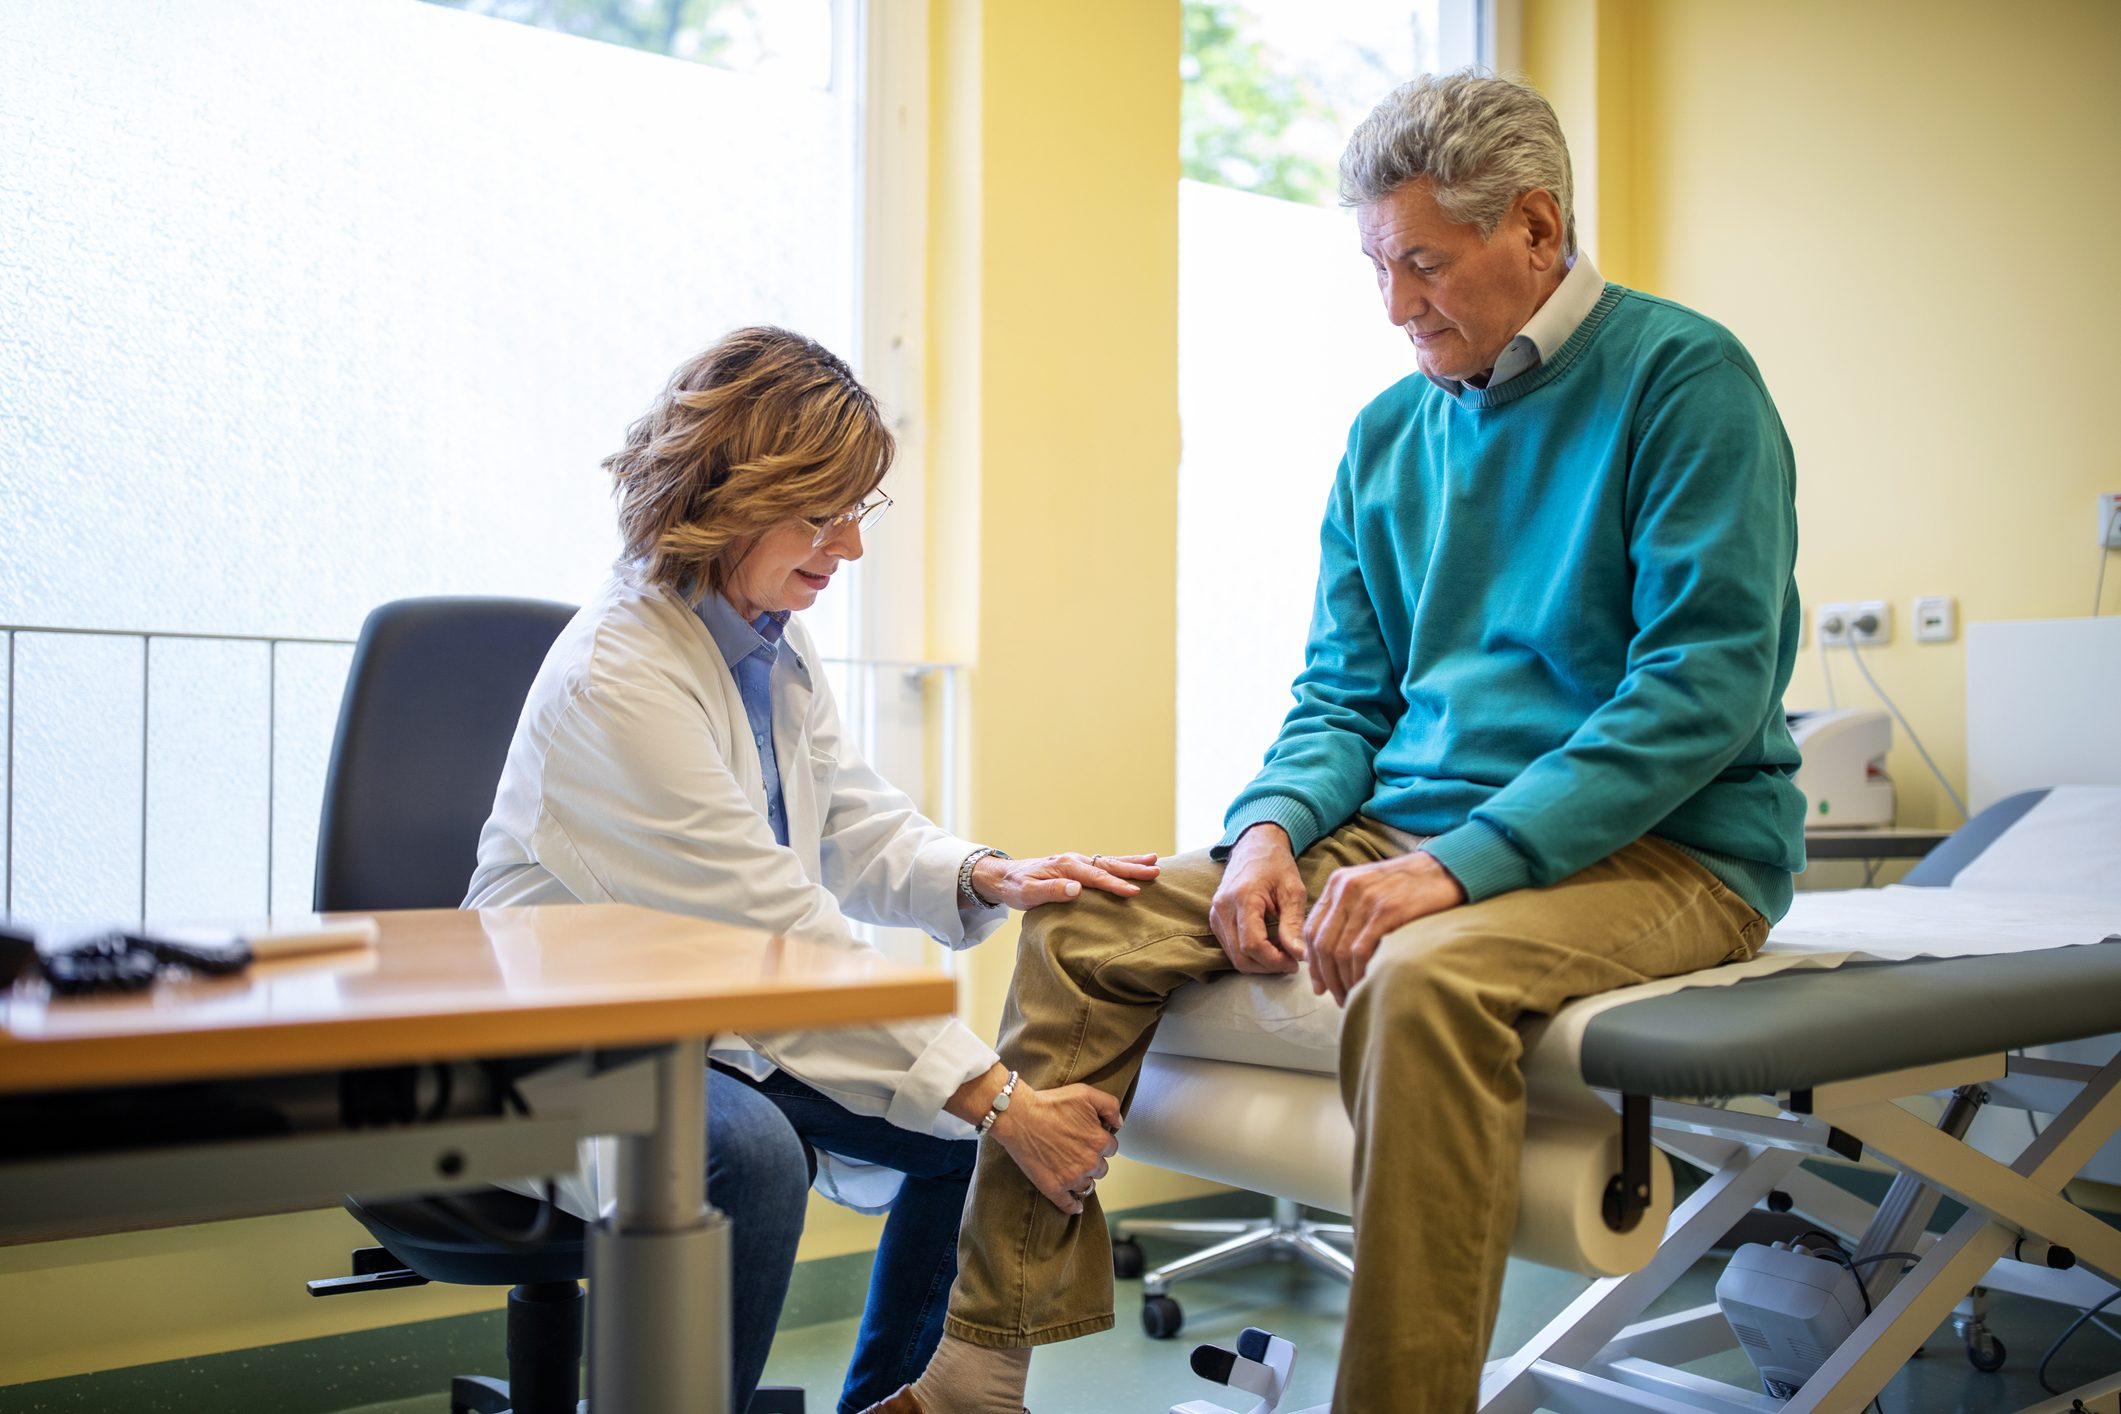 doctor examining patient's arthritis condition